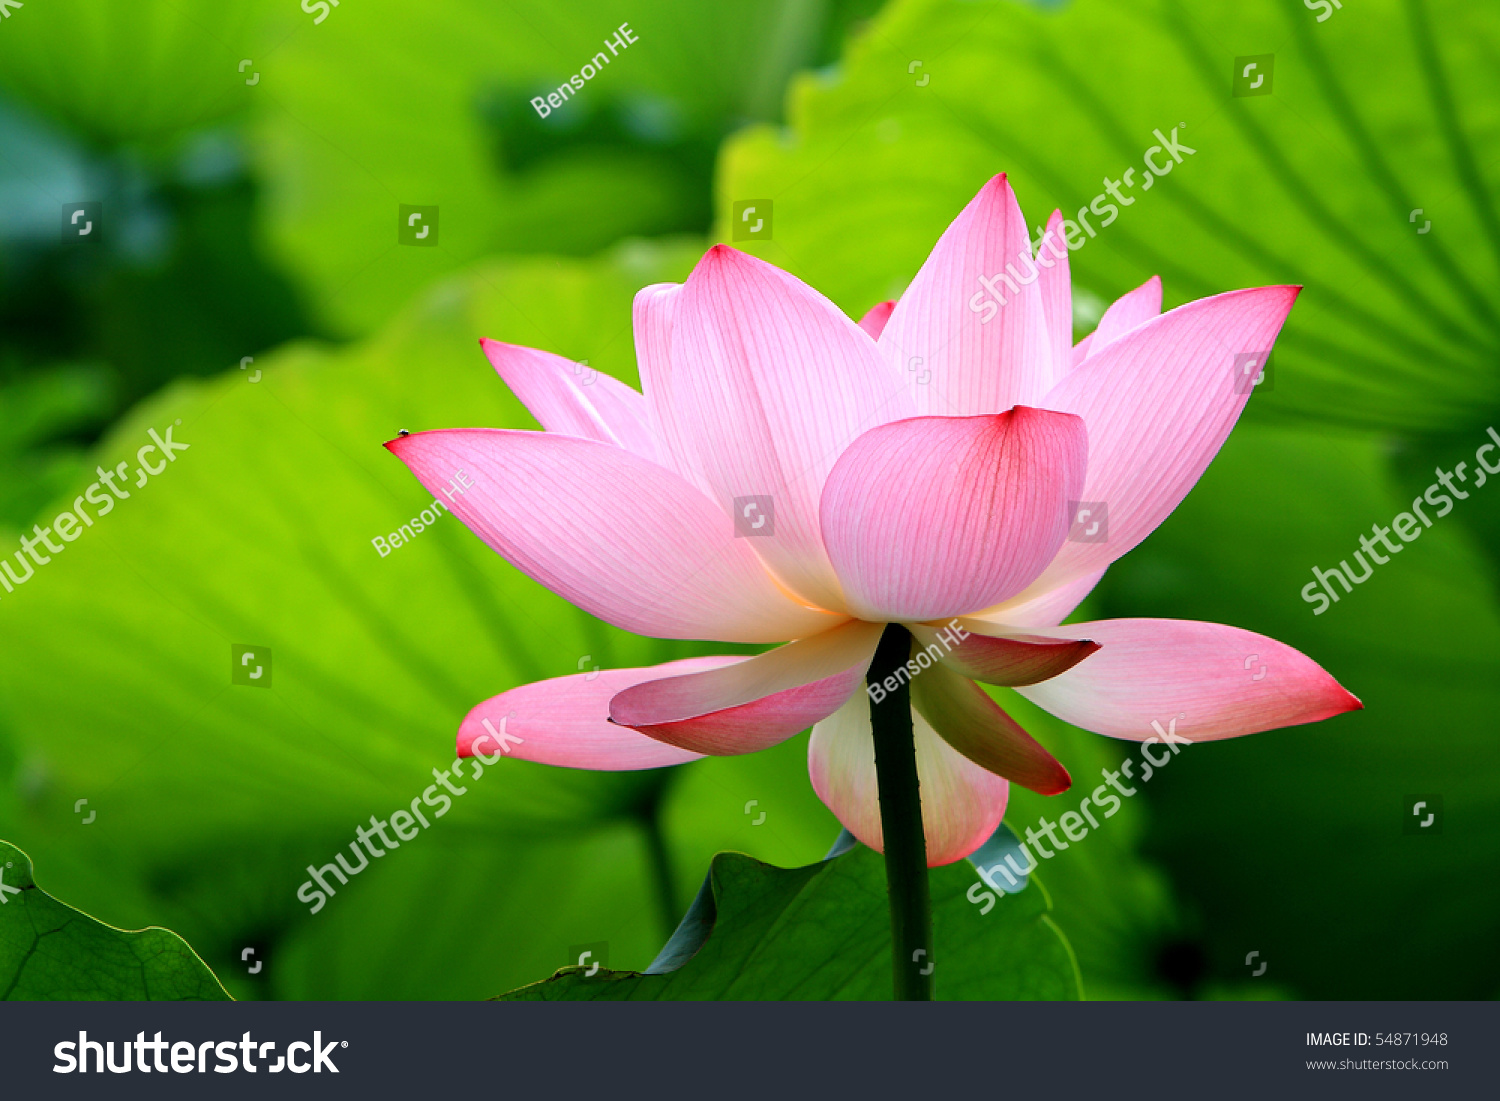 A pink lotus flower blossom among green foliage ez canvas id 54871948 izmirmasajfo